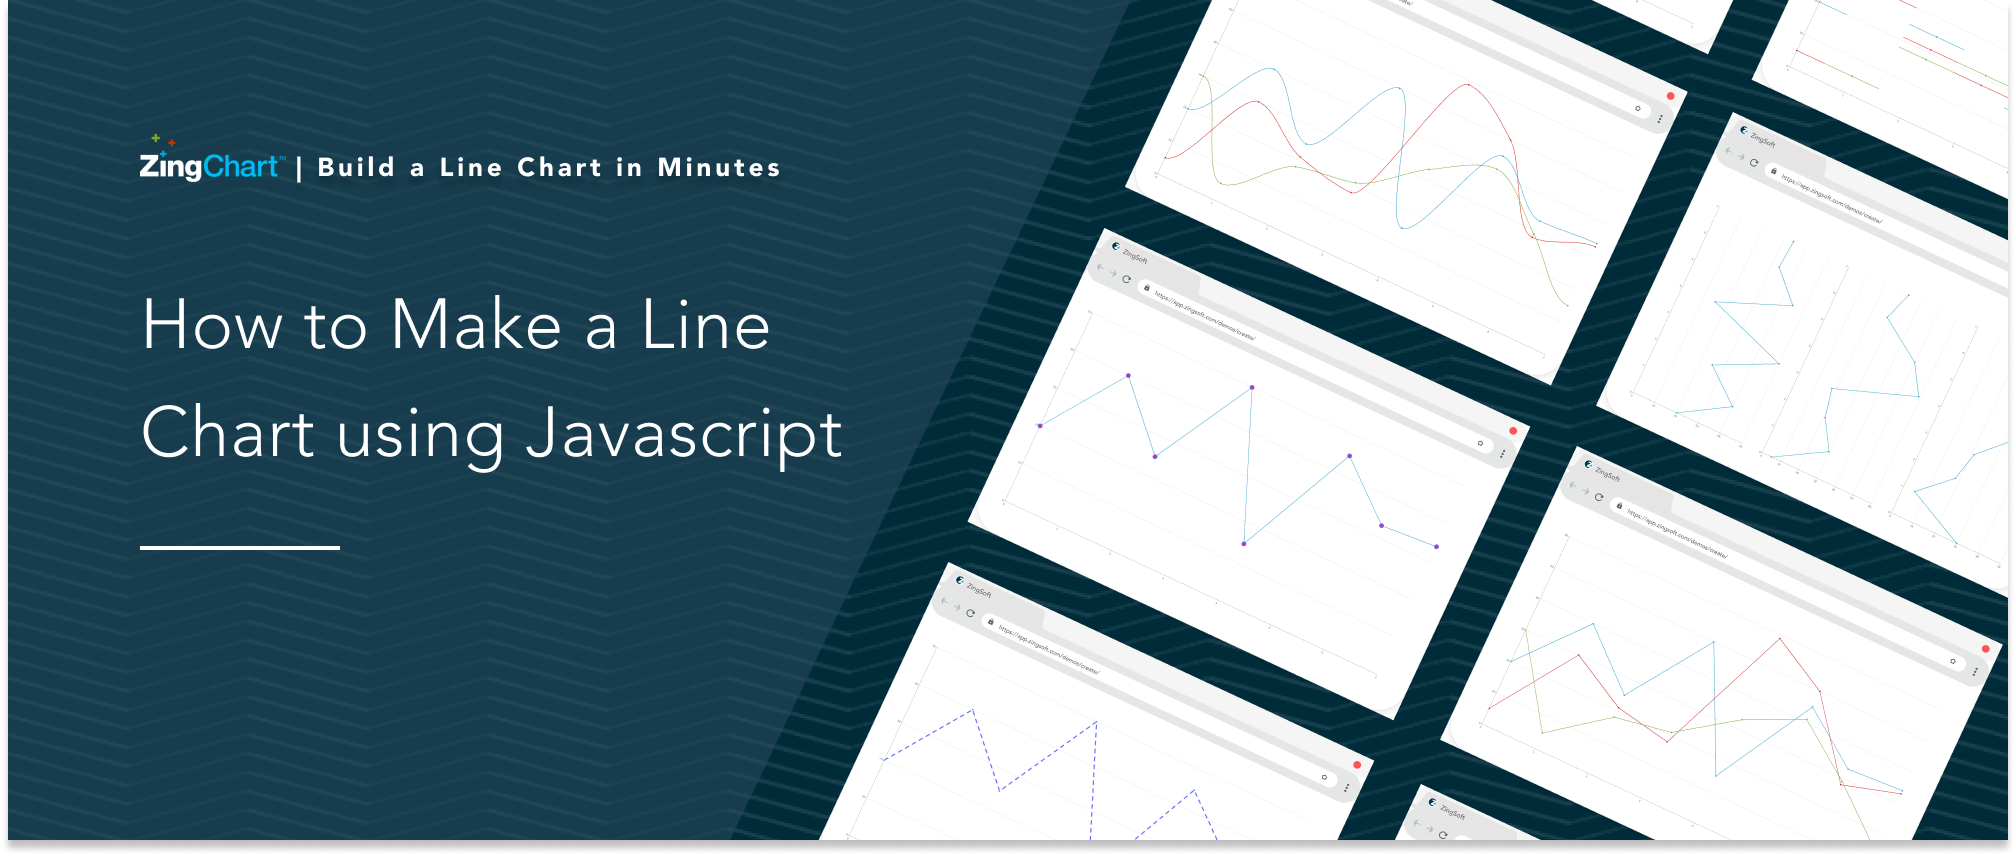 Cover image for 'How to Make a Line Chart Using JavaScript' blog post